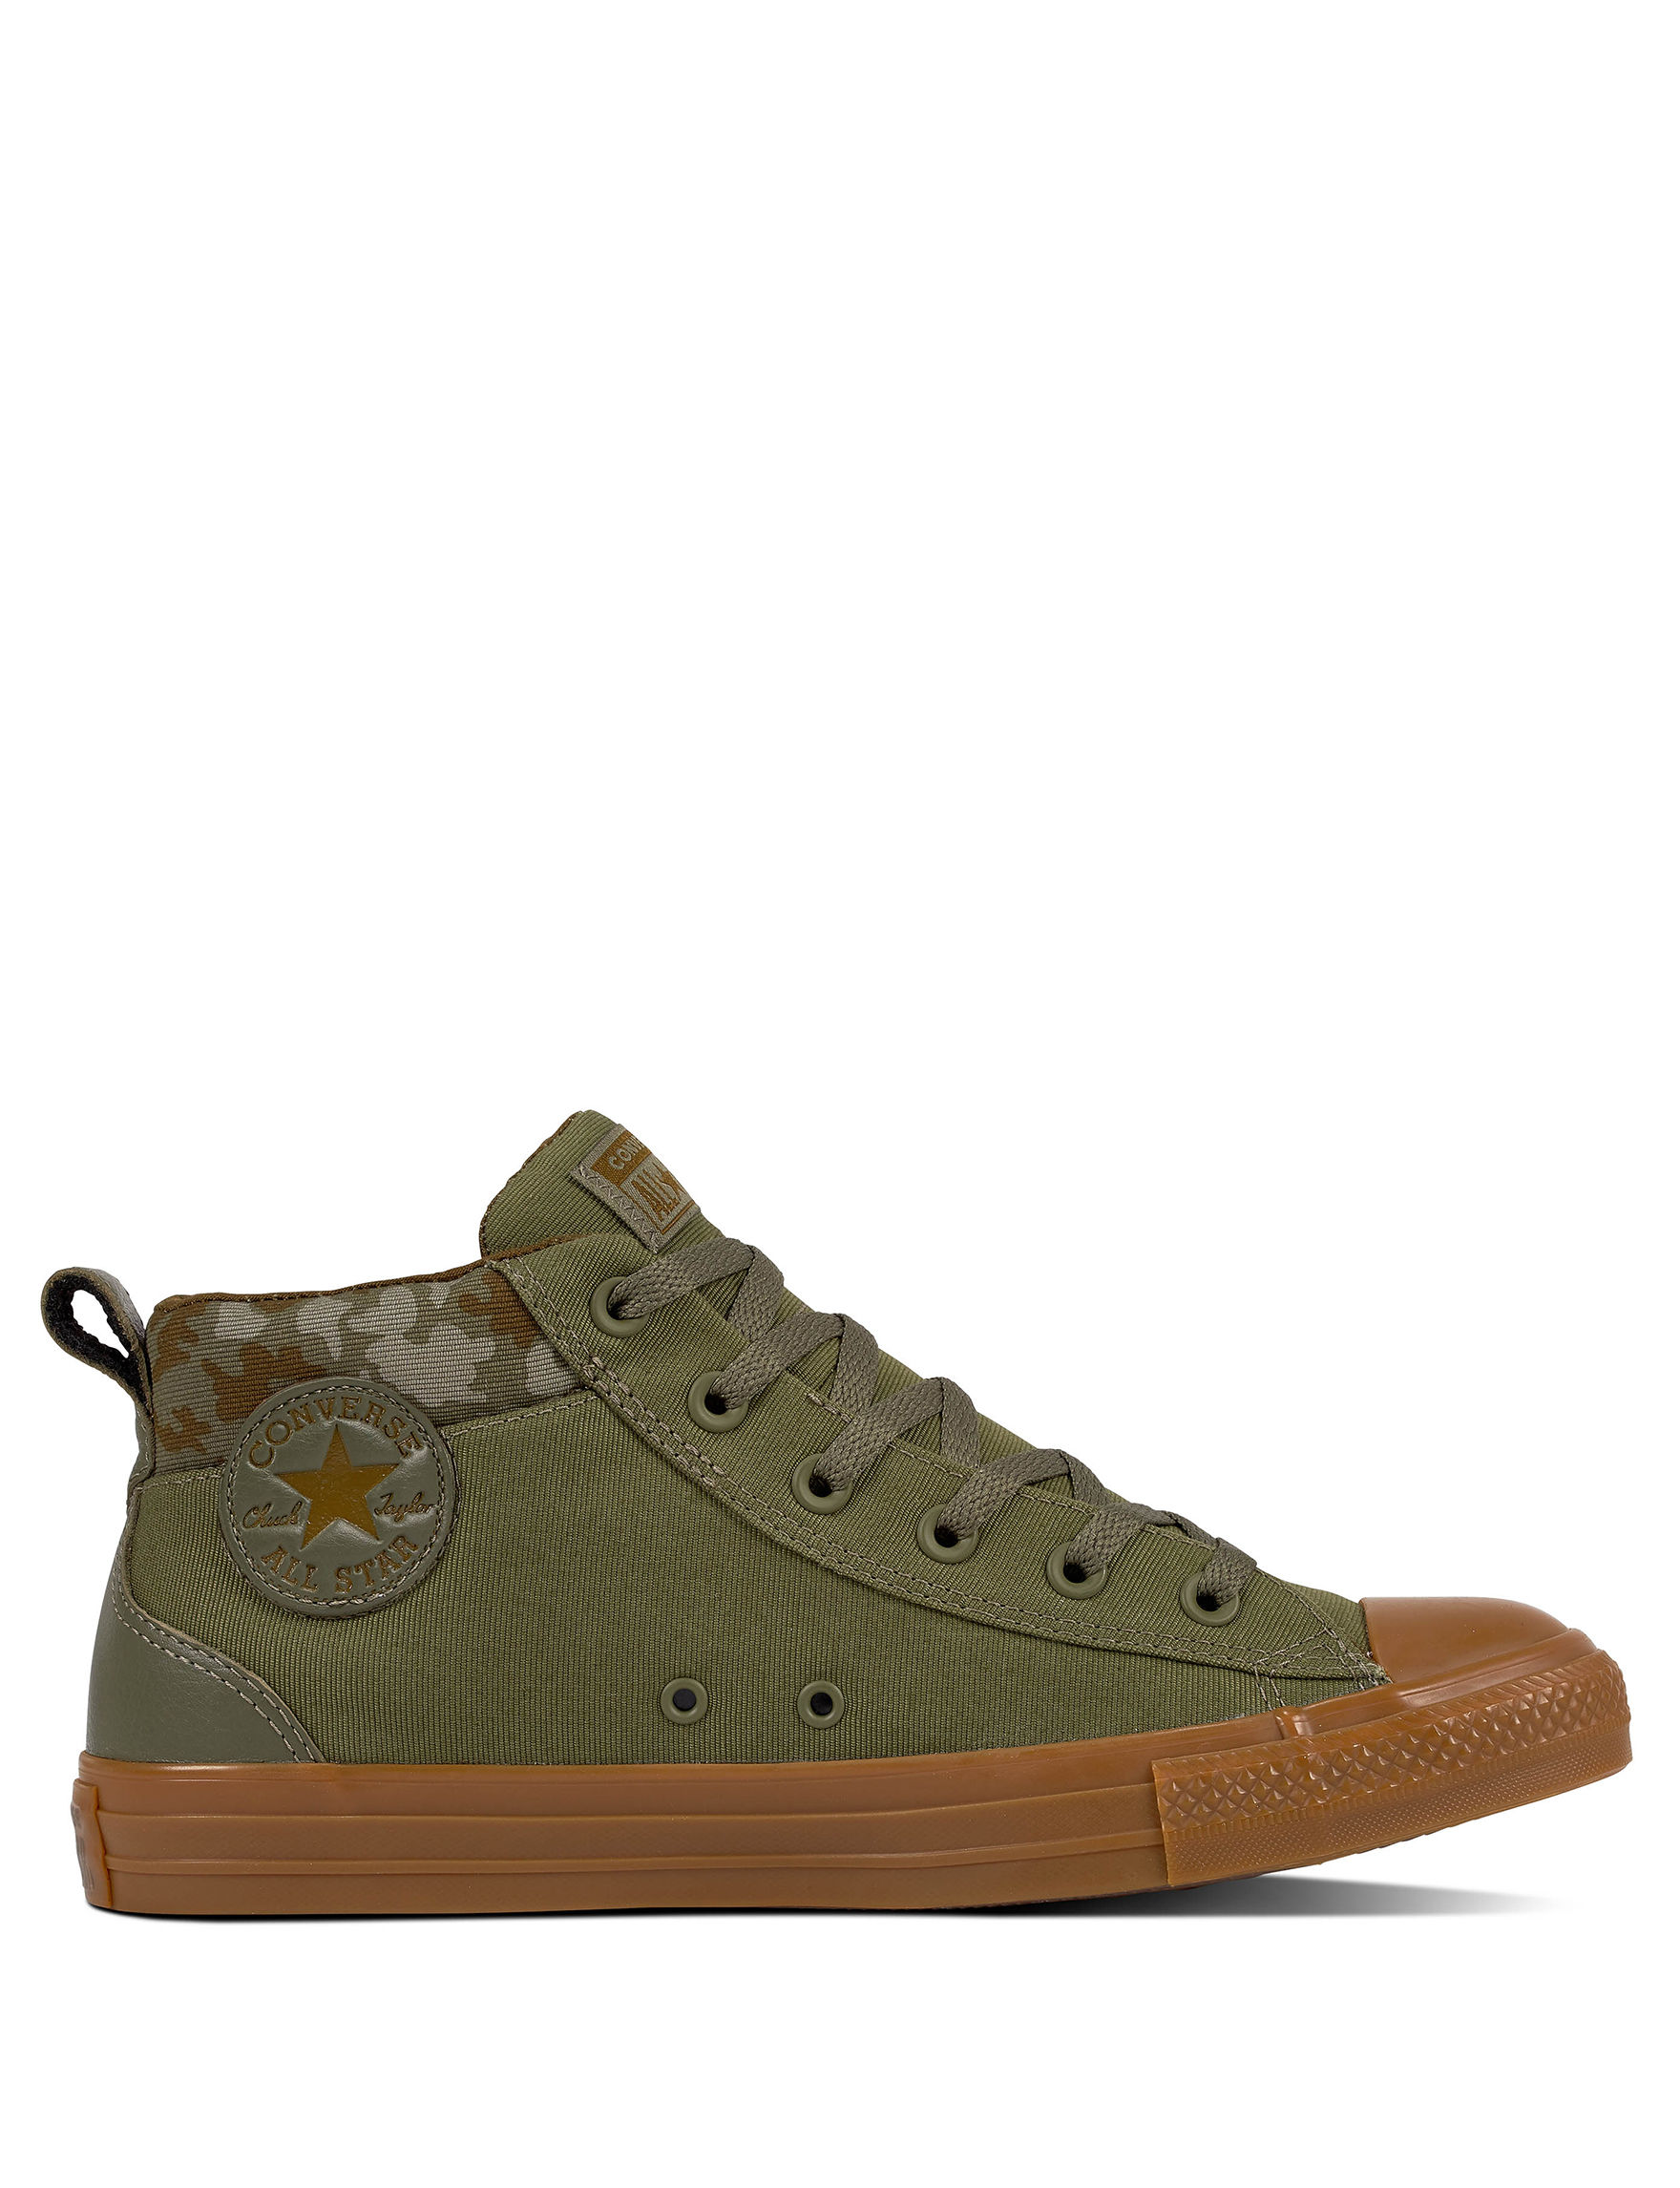 a13c501213a0 Converse Chuck Taylor All Star Street Mid Lace-Up Shoes